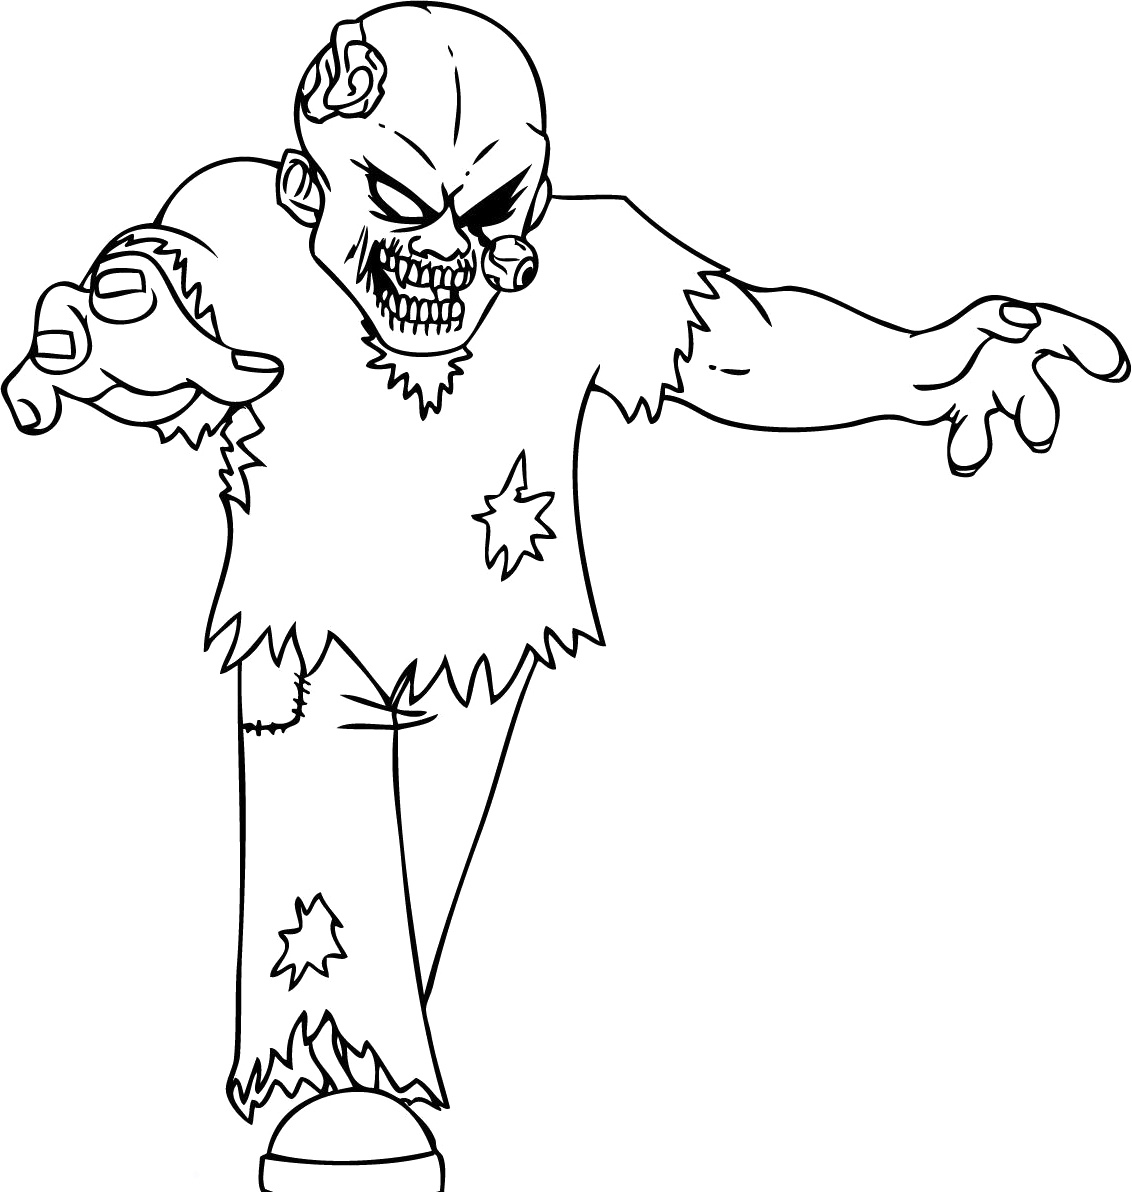 halloween color sheet activity for kids coloring pages halloween